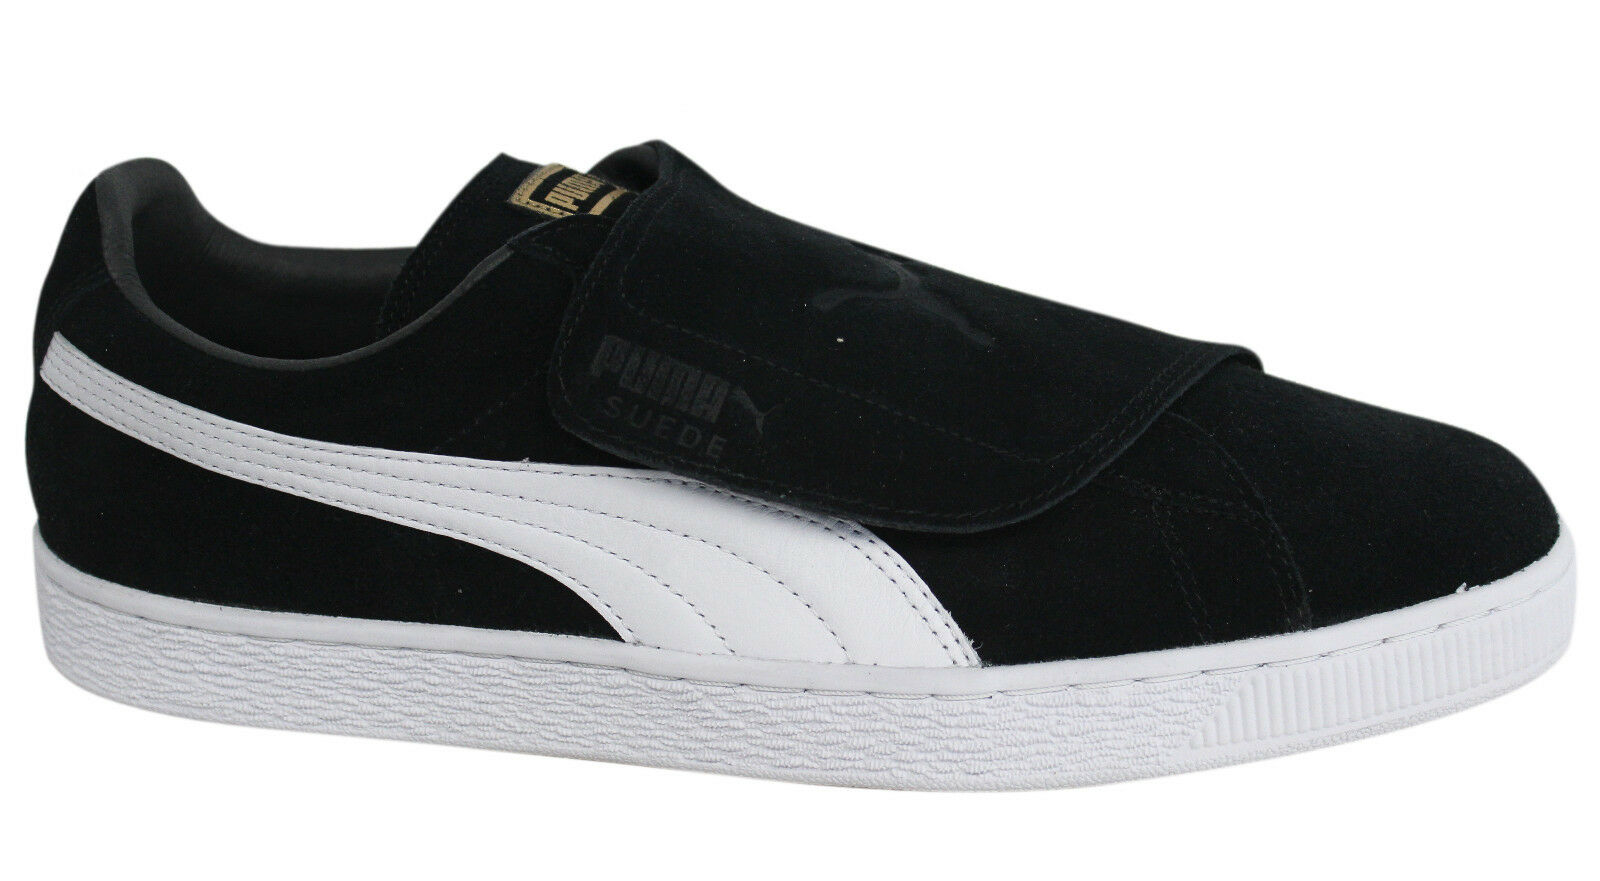 Puma Suede Strap Up Black Leather Mens Trainers 363653 03 D80